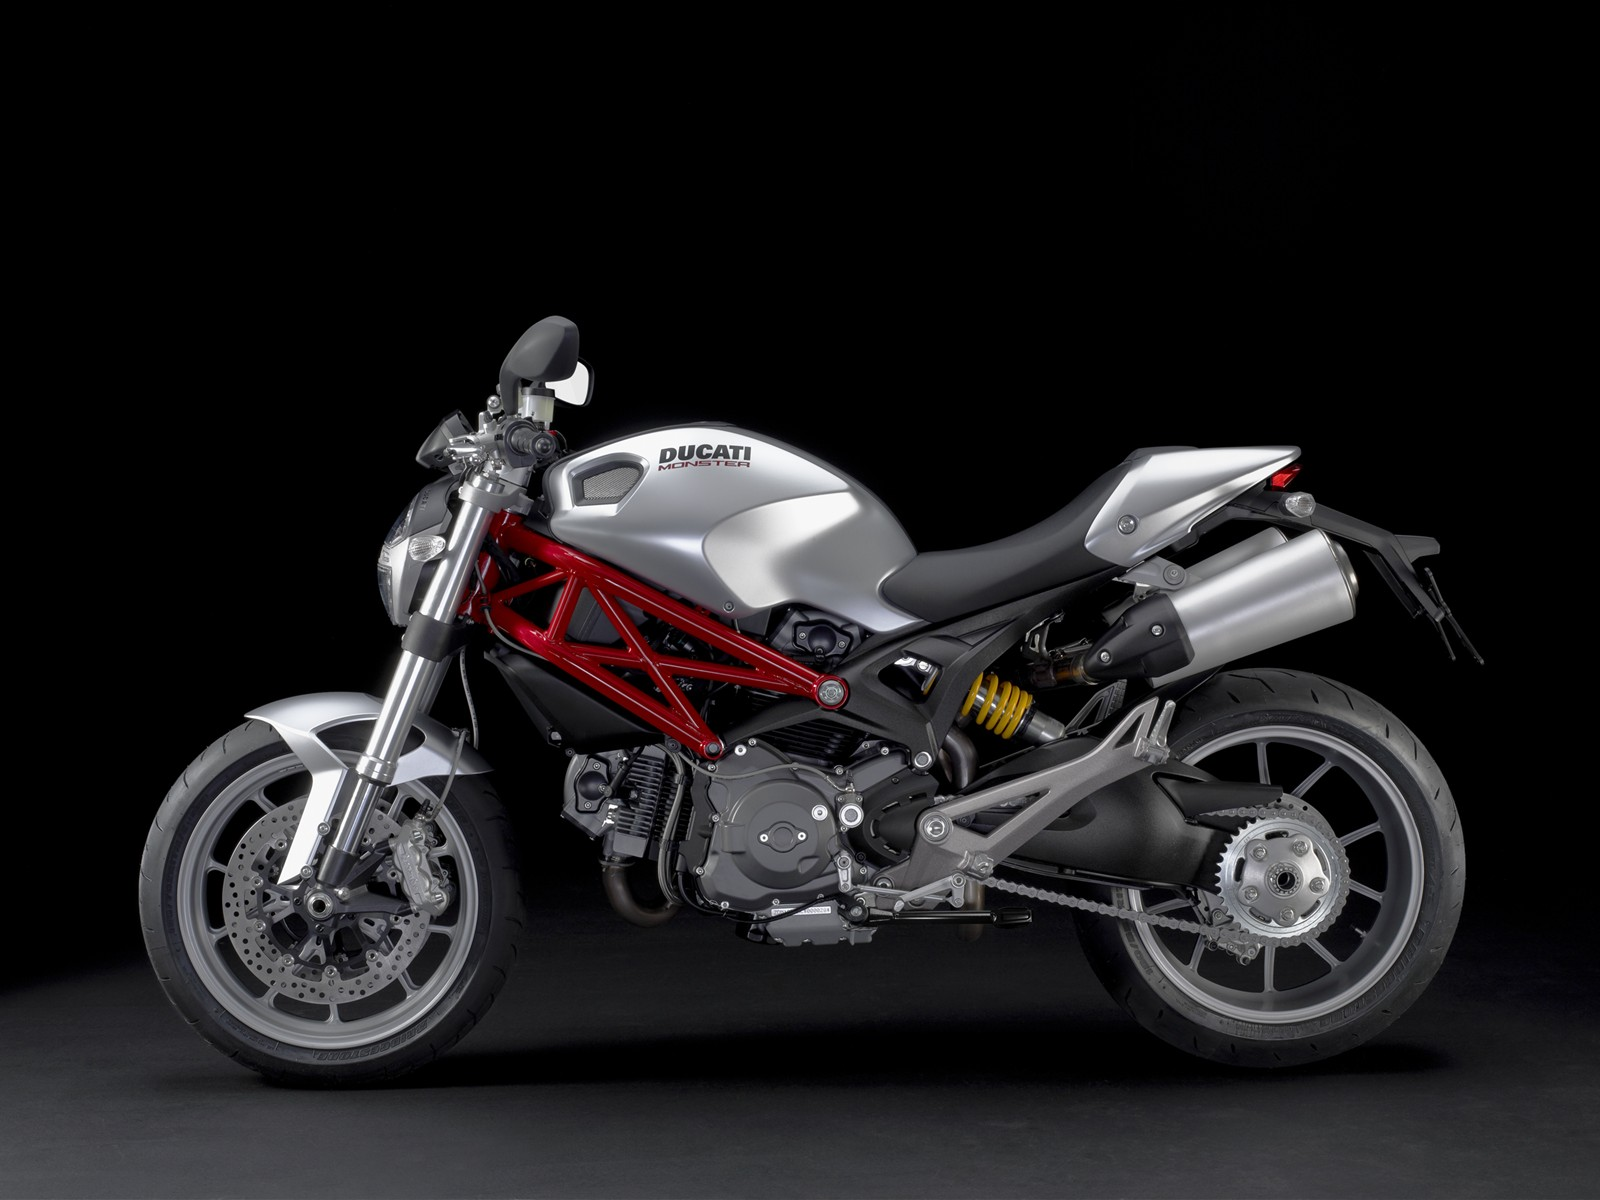 Ducati Monster 1100 Metallic Mix452328327 - Ducati Monster 1100 Metallic Mix - Monster, Metallic, Ducati, 1100, 1000